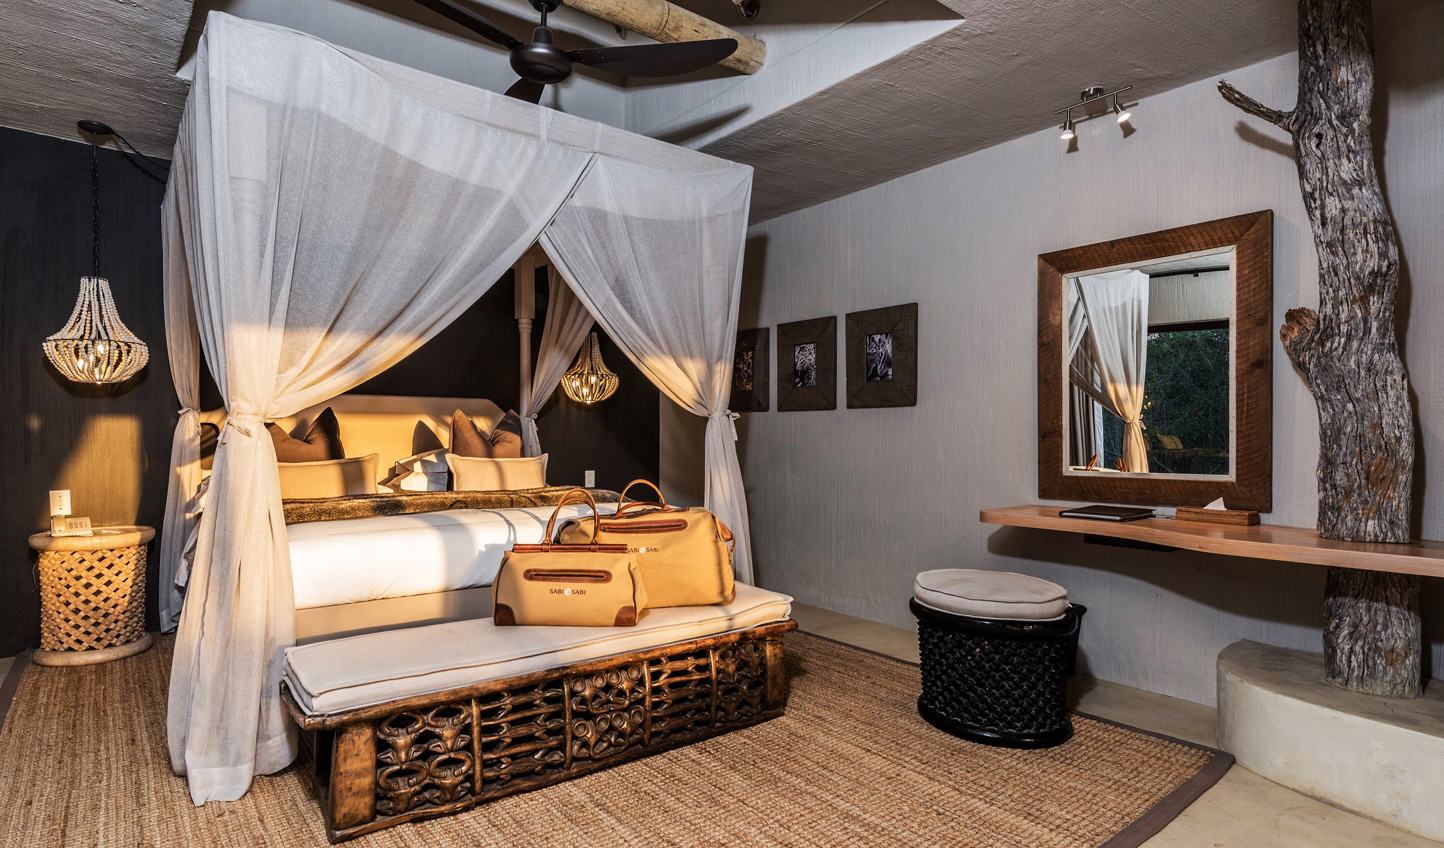 Rest up in luxury after days in the bush